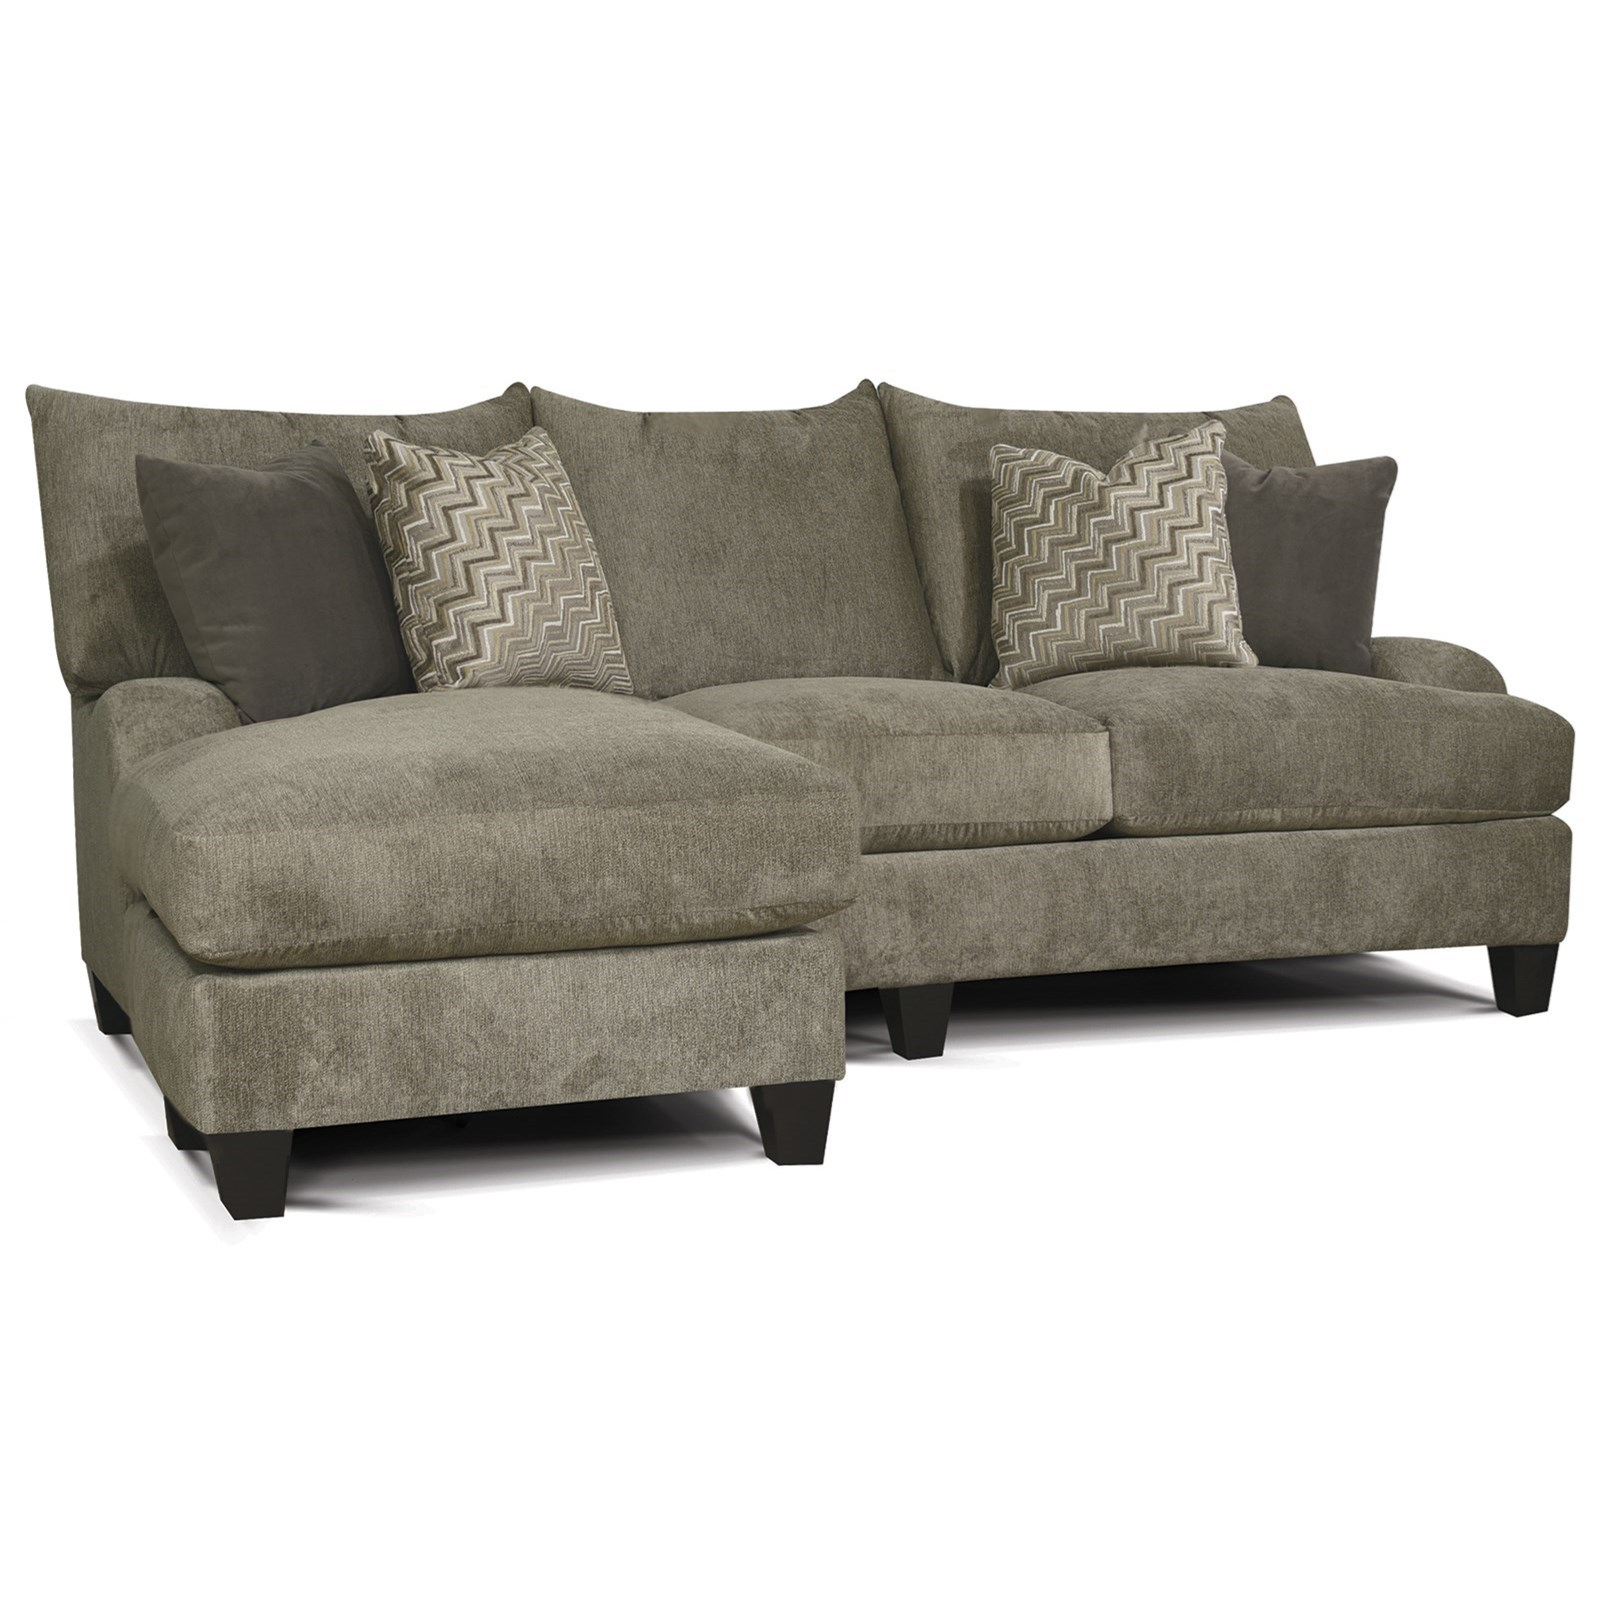 Catalina Sofa with Floating Otto-Chaise by England at Crowley Furniture & Mattress